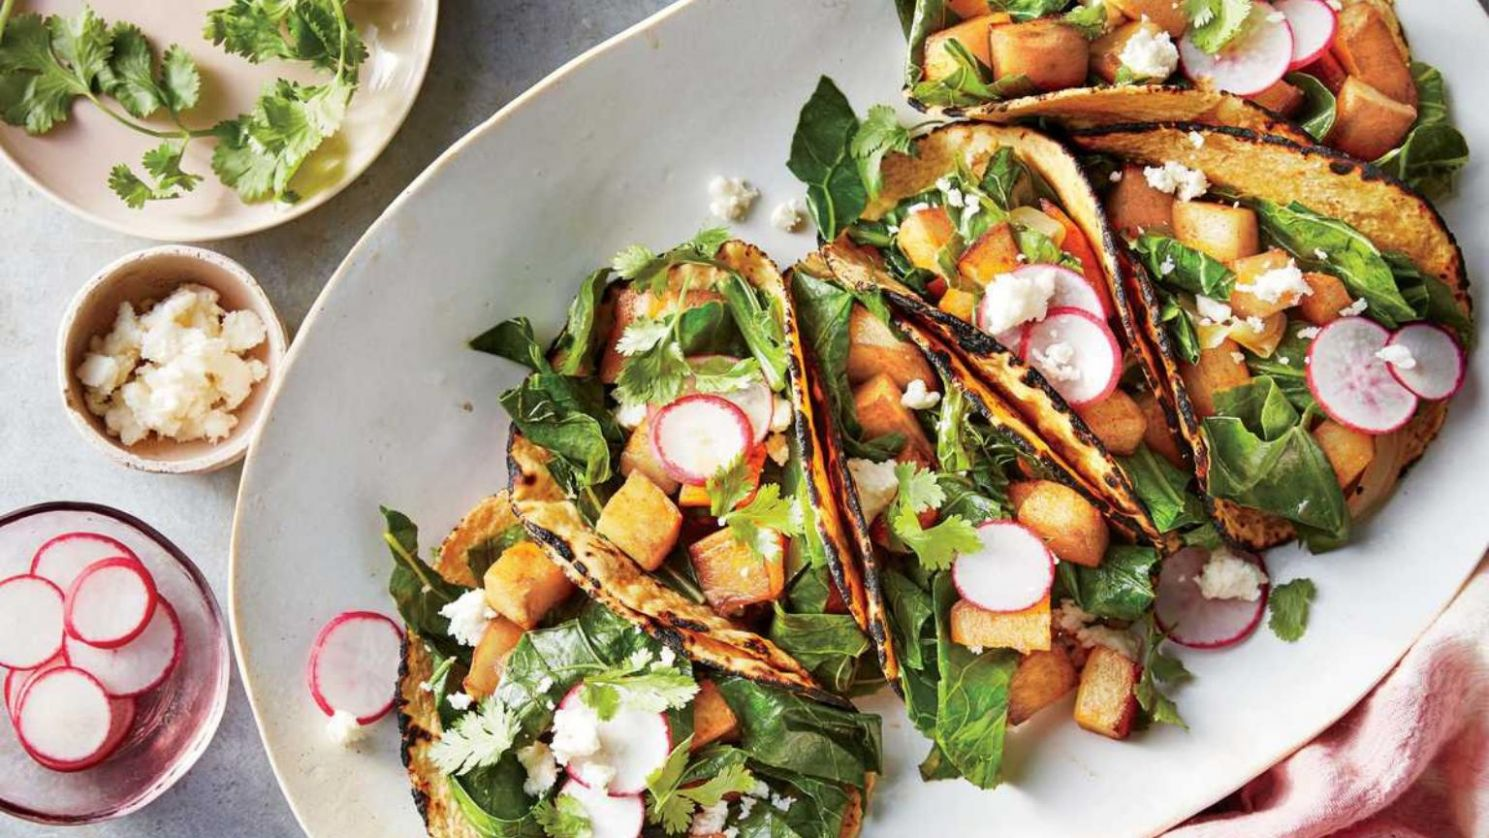 8 Easy Vegetarian Recipes for Busy Weeknights